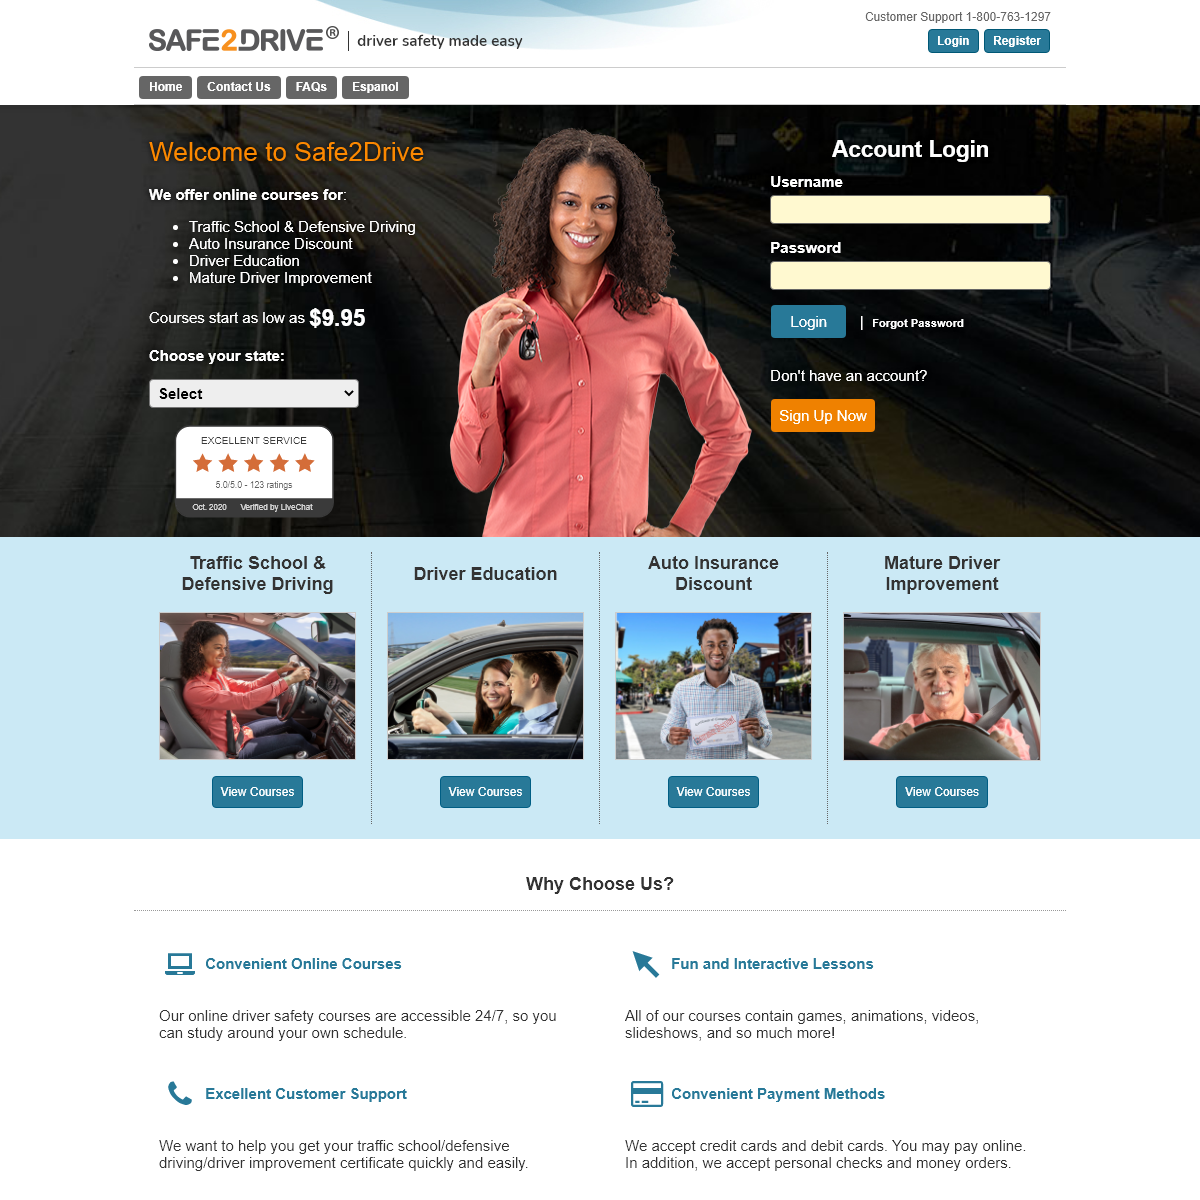 Online Defensive Driving, Traffic School, Driver Education, and Insurance Discount Courses - Safe2Drive